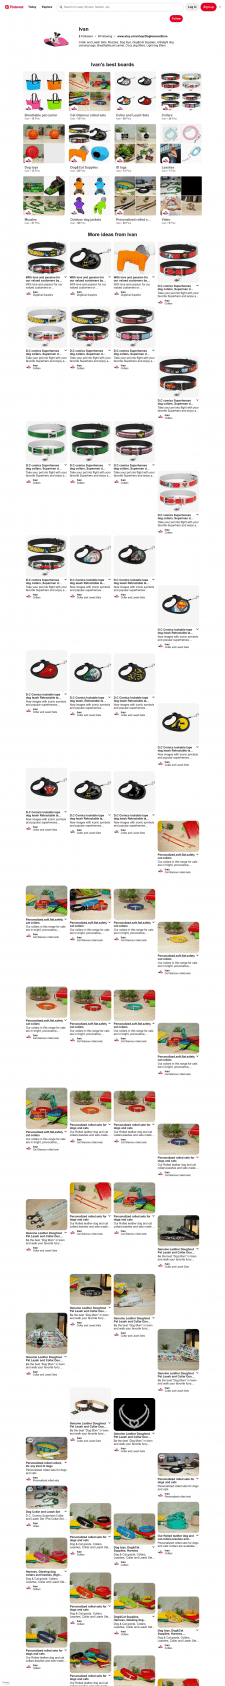 Dog&Cat Supplies, Collar and Leash Sets, Muzzles